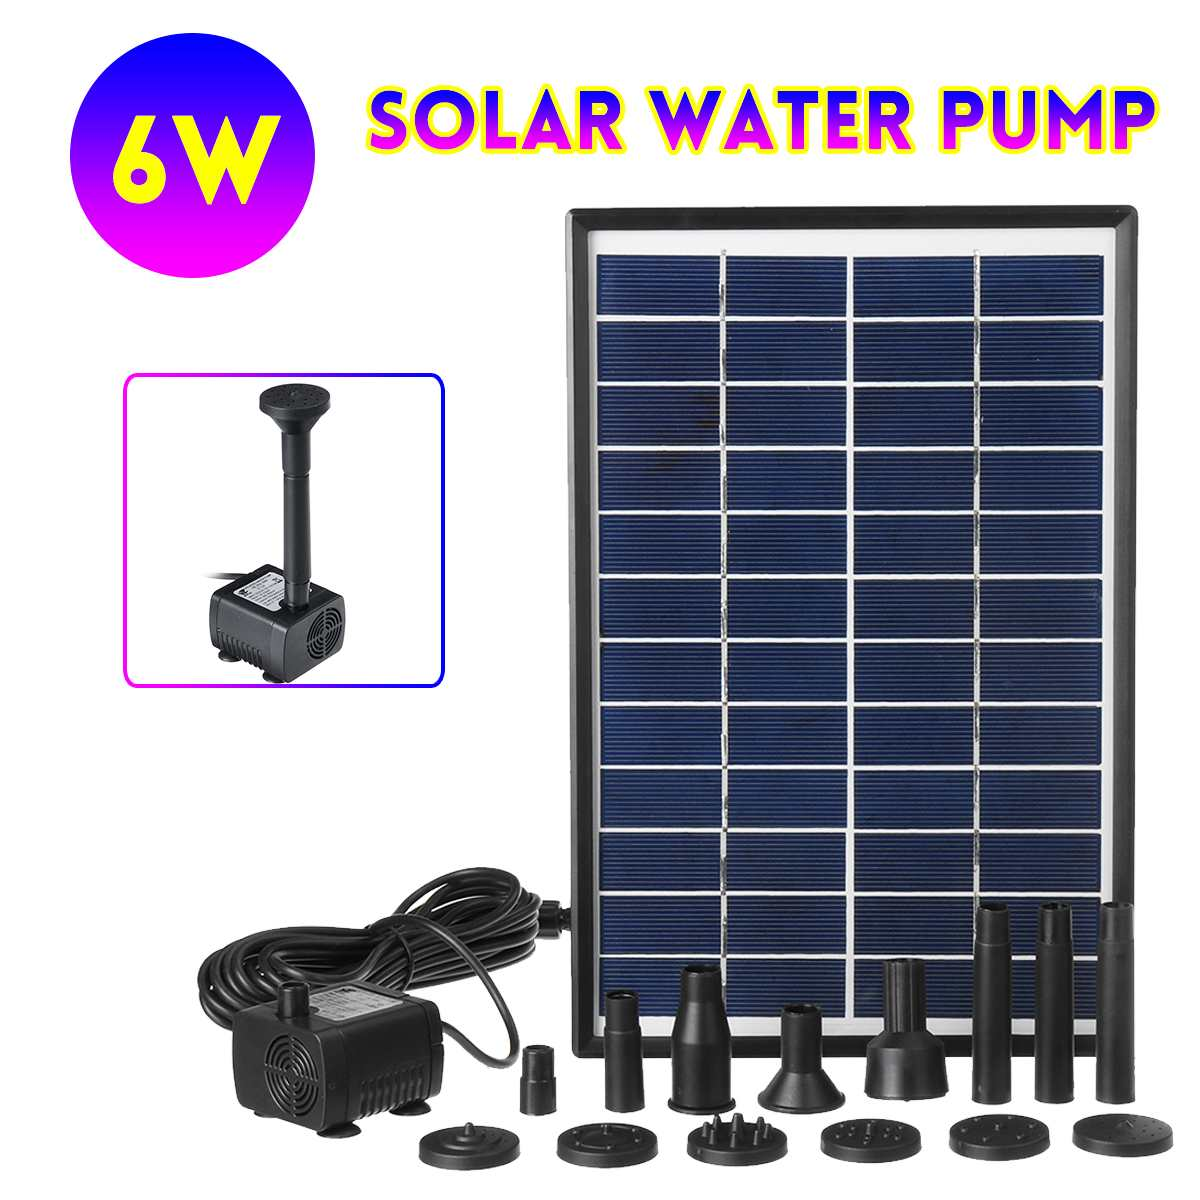 Solar Power Panel 6W Water Pump 500L/H Garden Landscape Floating Fountain Artificial Outdoor Fountain Home Decoration Pump Set